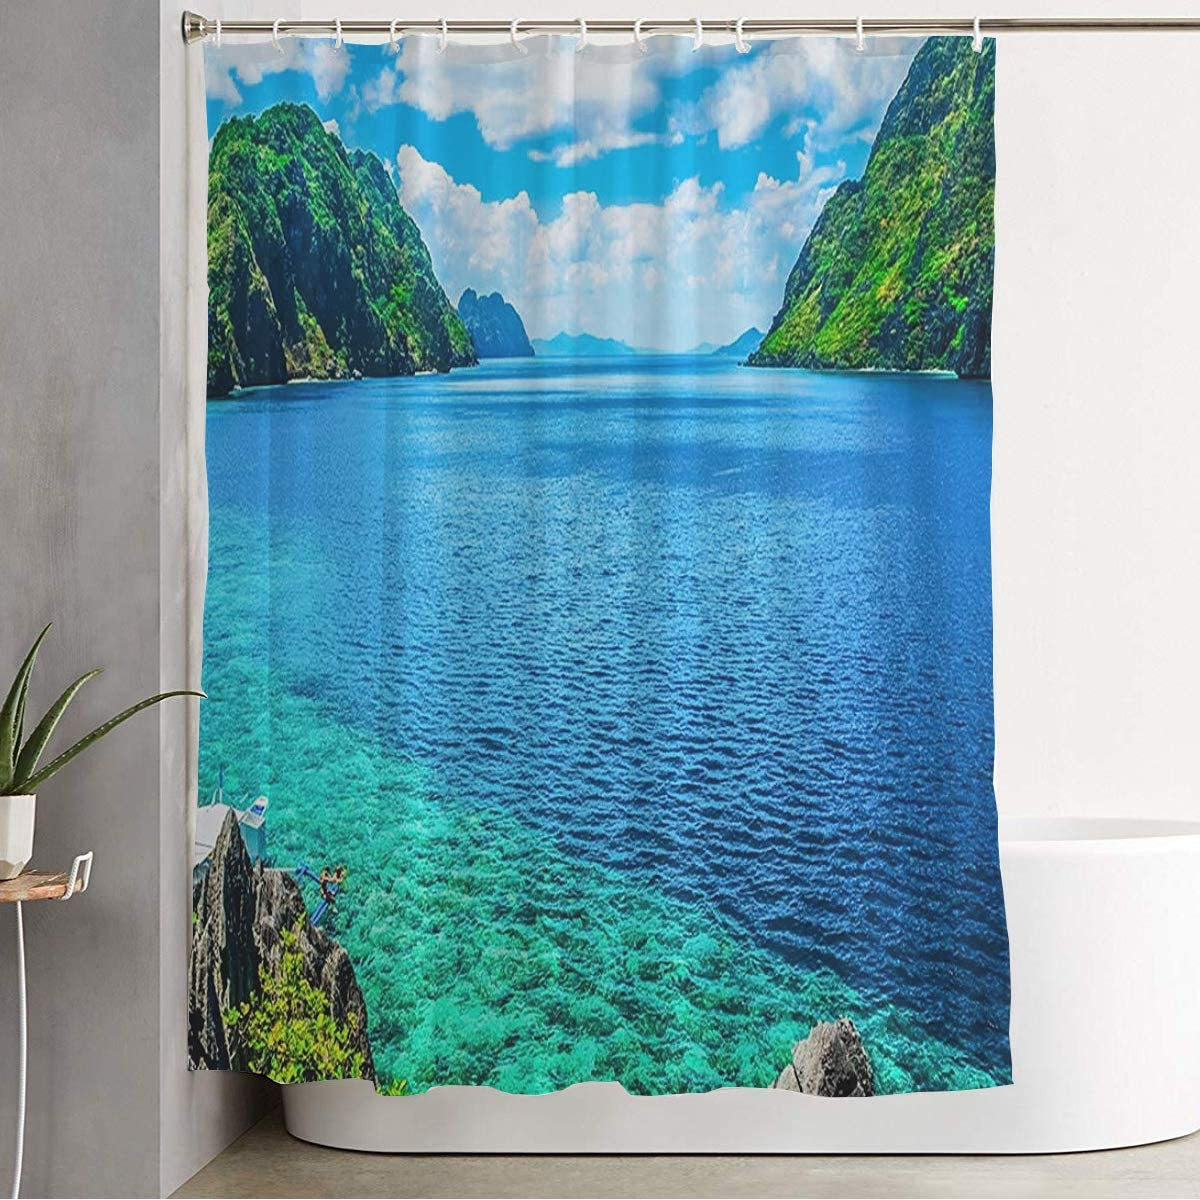 Shower Curtain Scenic View Natural Bay Seascape Mountain Islands Nature Philippines Parks Cliff Paradise Outdoor Home Bathroom Decor Polyester Fabric Waterproof 72 x 78 Inch Set with Hooks